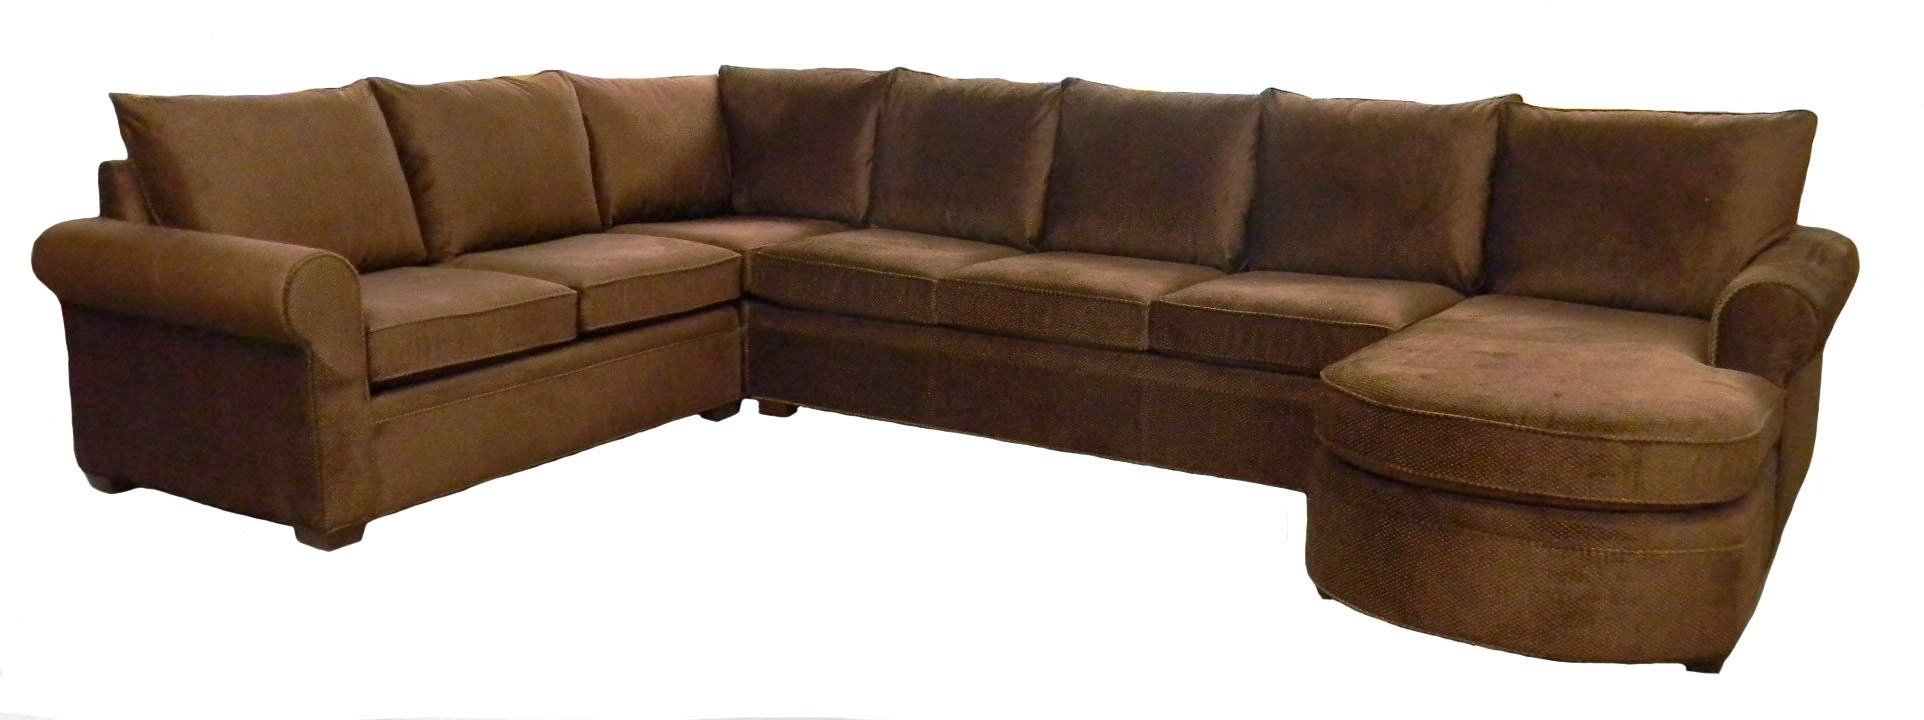 Beautiful Sectional Sofas Denver 18 Modern Sofa Inspiration With in Denver Sectional Sofas (Image 1 of 10)